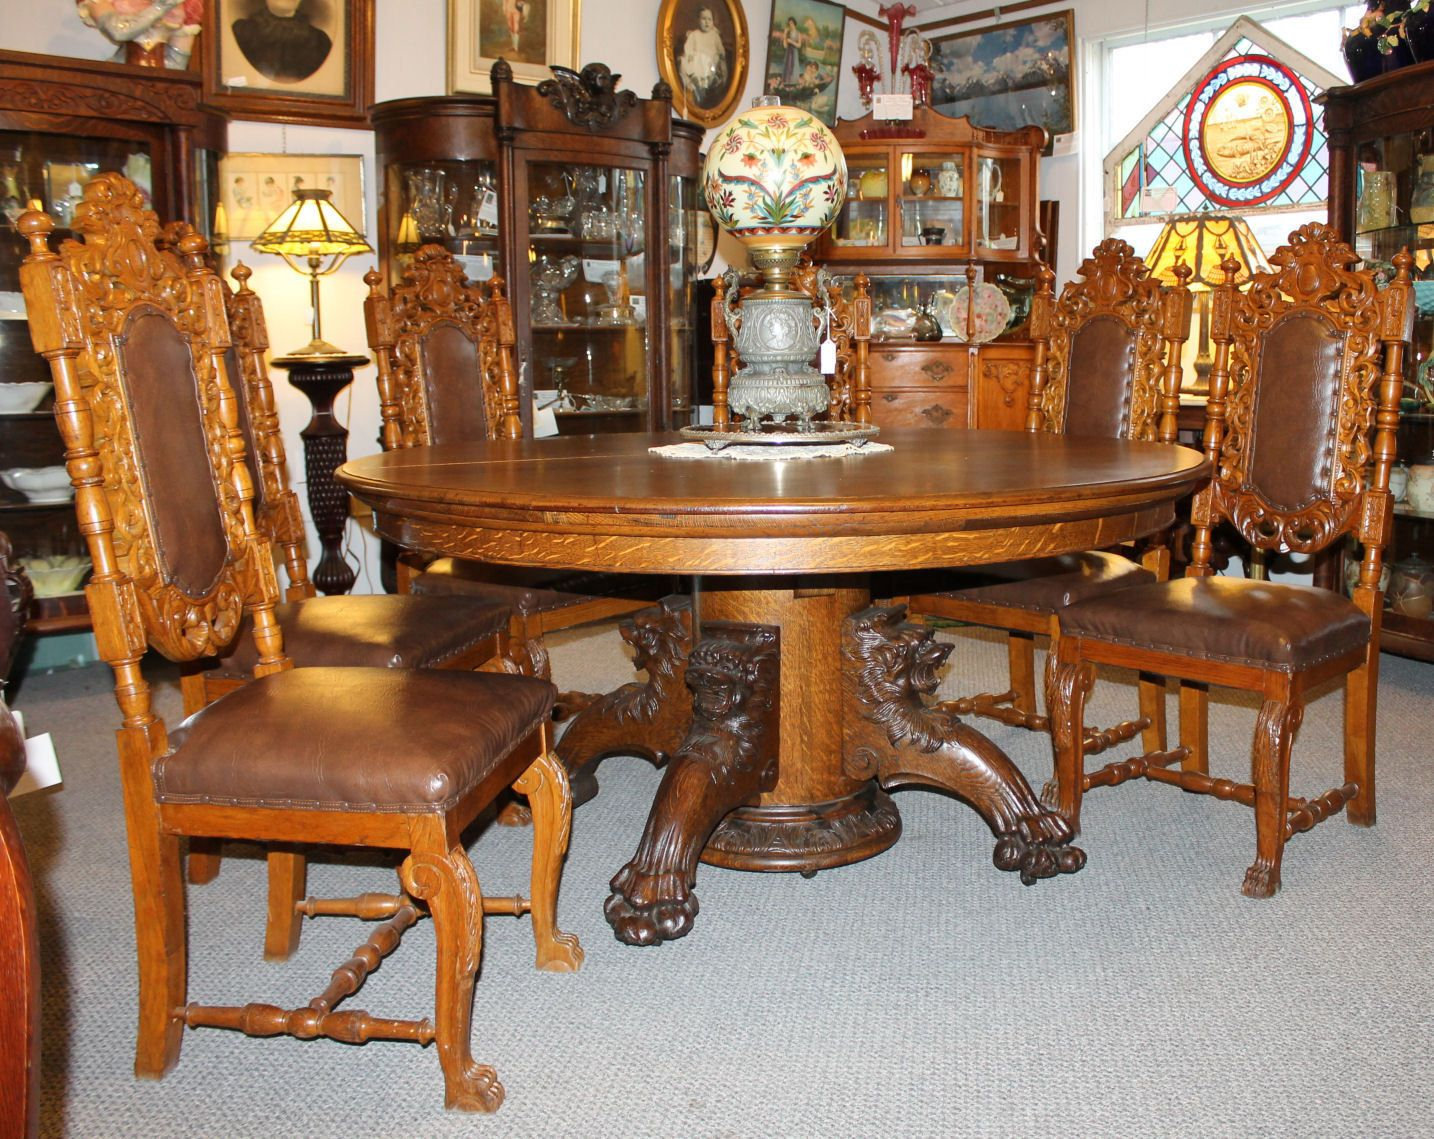 Antique Round Oak Dining Table With Carved Lion Headed And